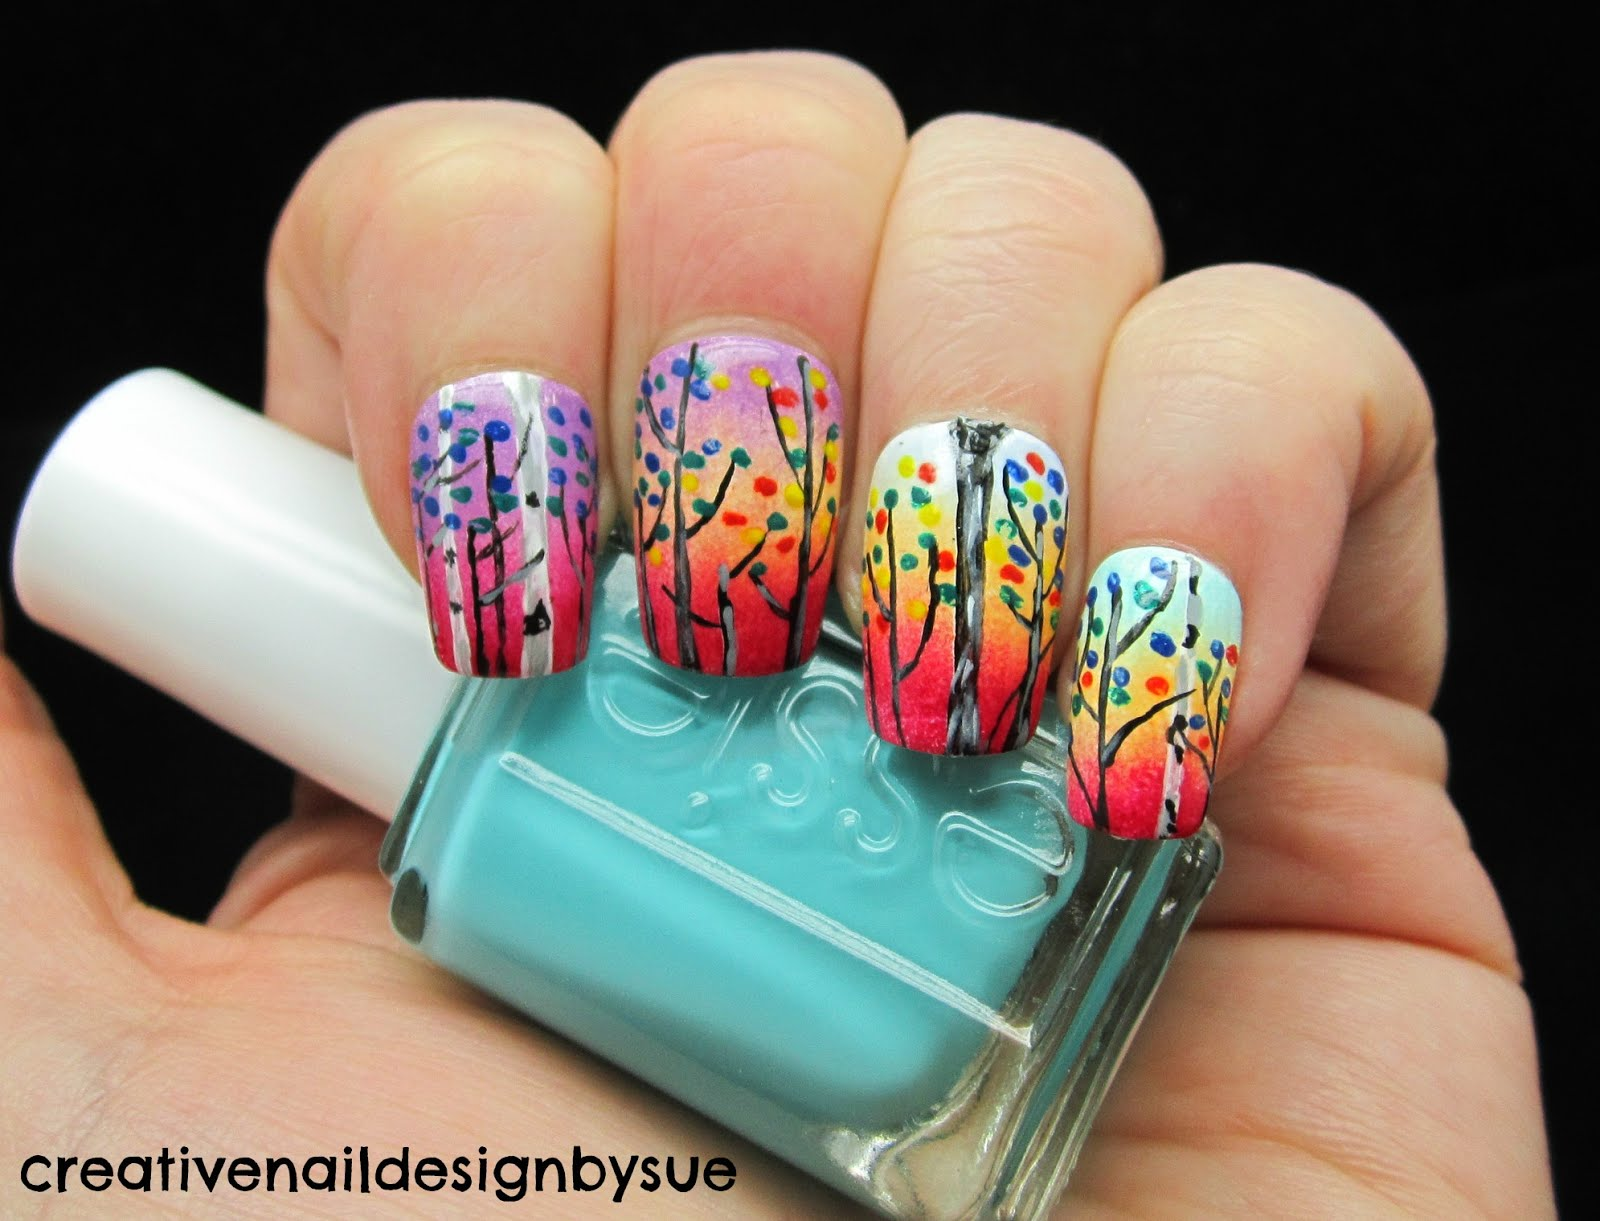 Does creative nail design test on animals interesting and view images amazing colorful nail art prinsesfo Choice Image